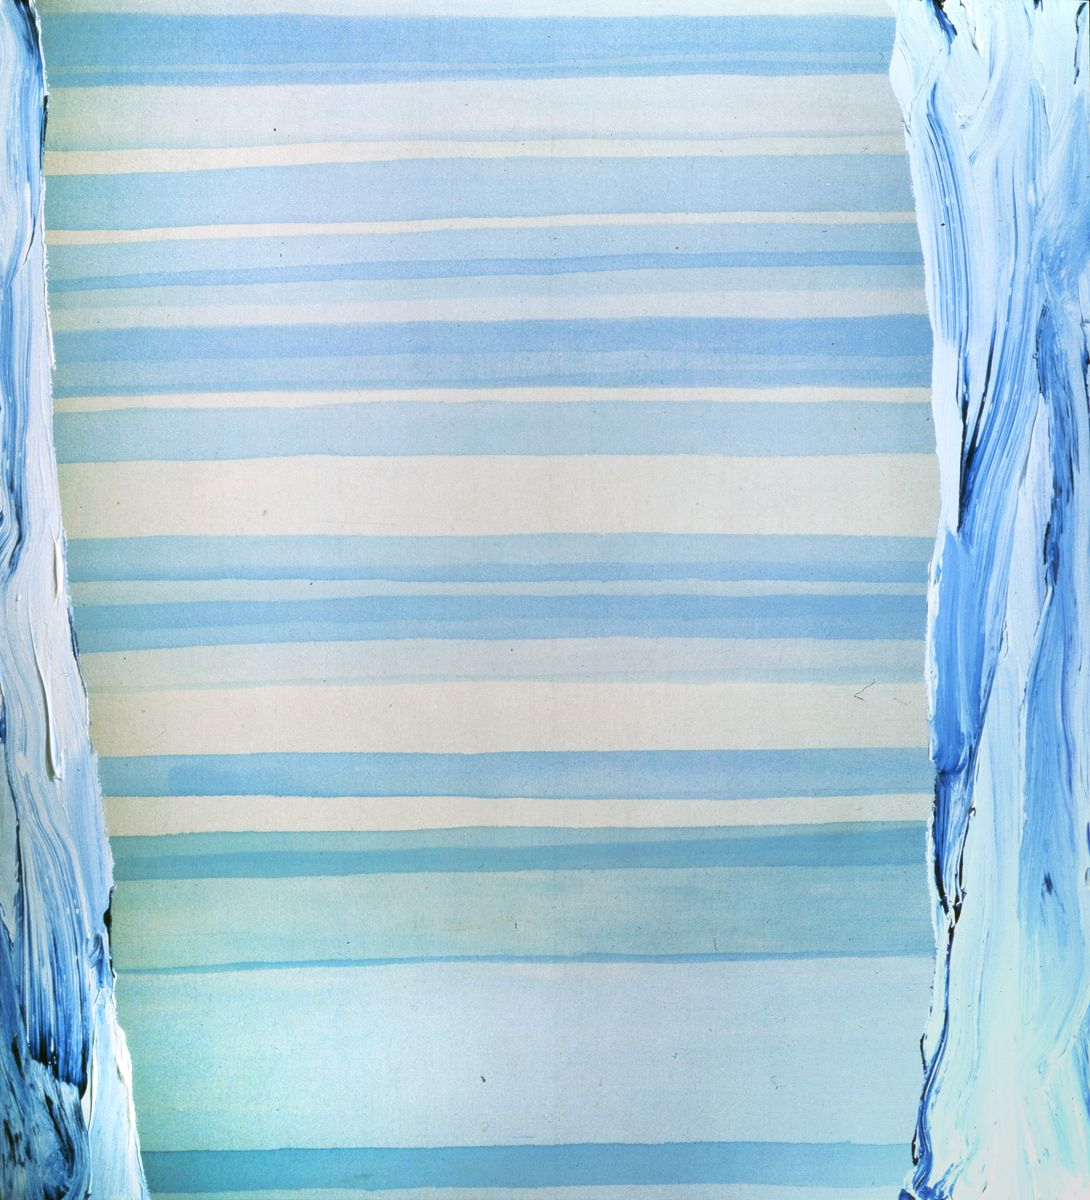 Laura Owens, Untitled, 1995, Acrylic on canvas, 66 x 60 inches